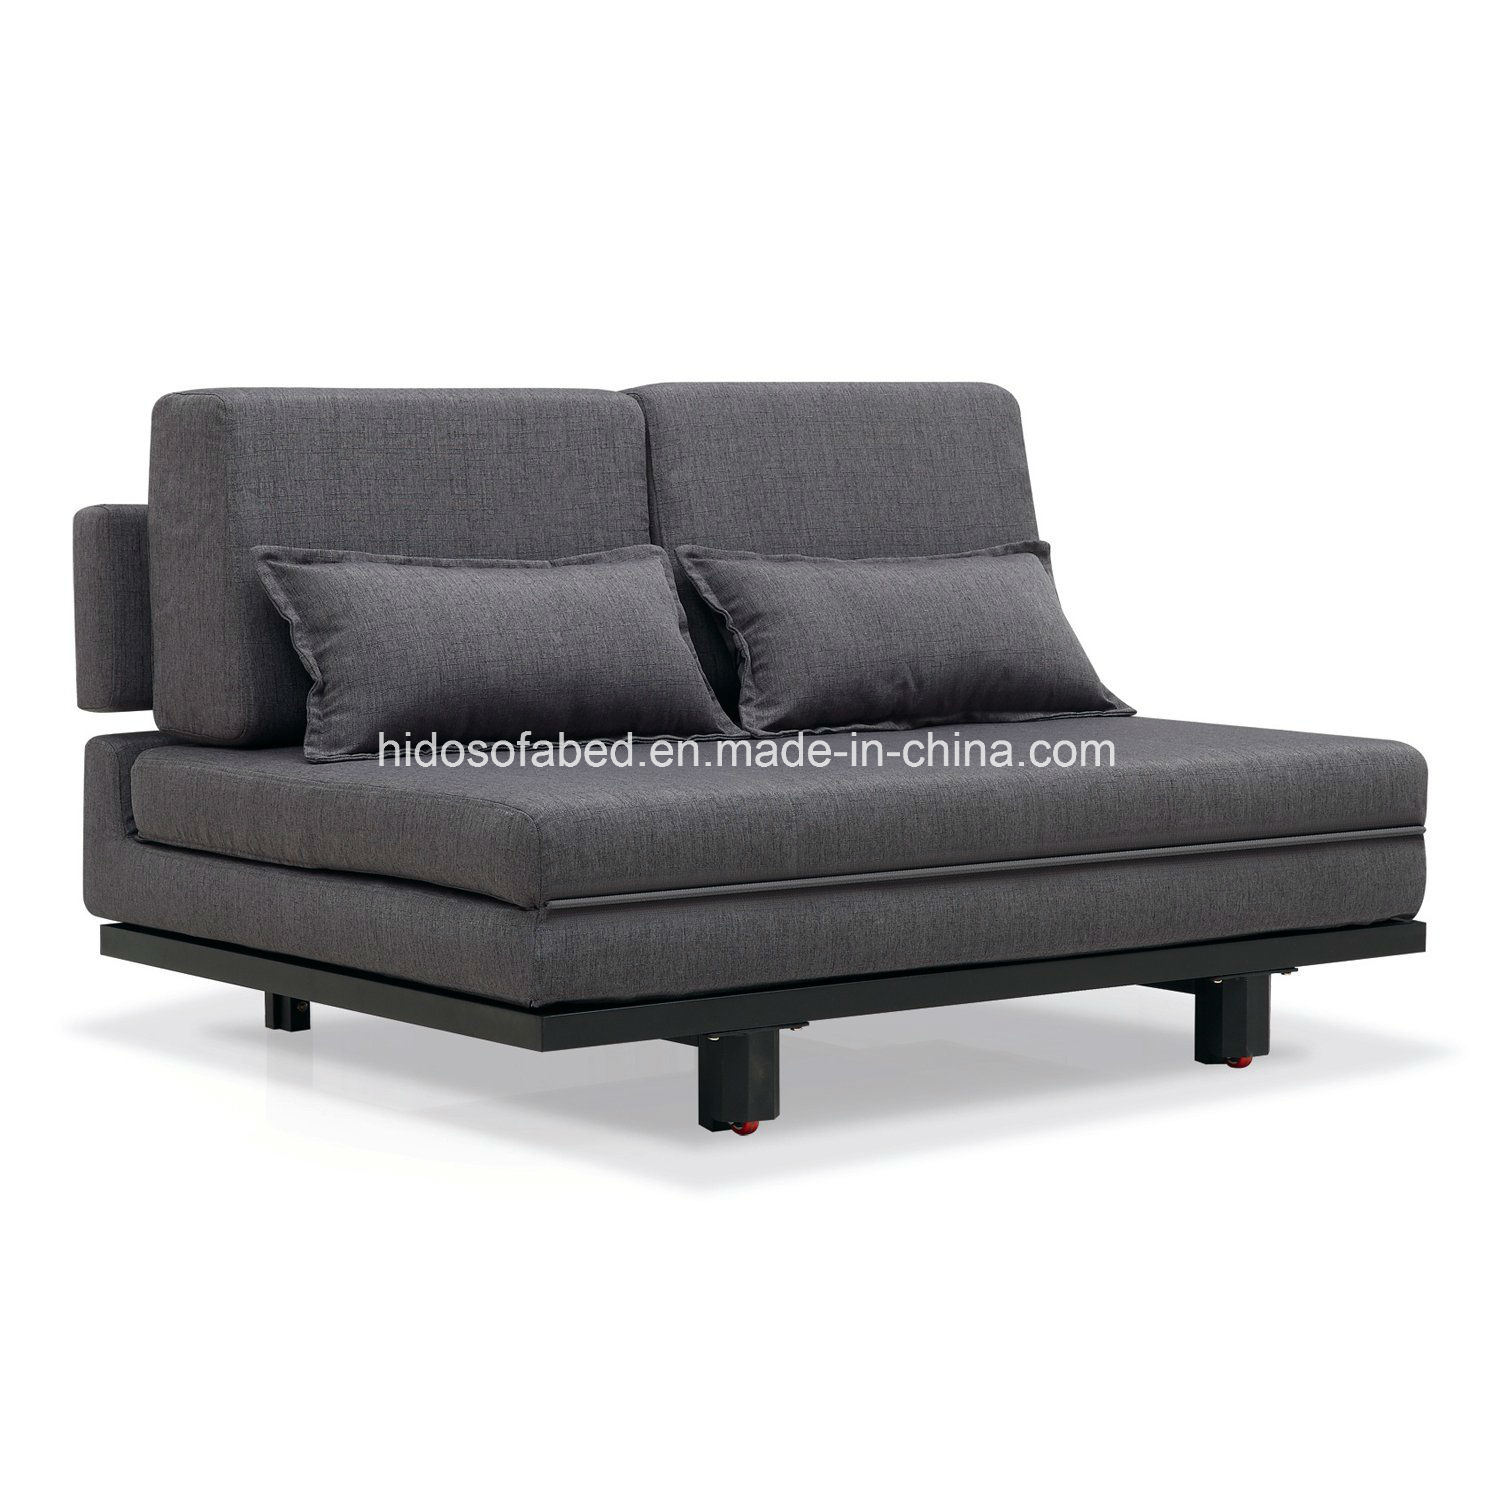 Fabric Sleeper Pull Out Sofa Bed